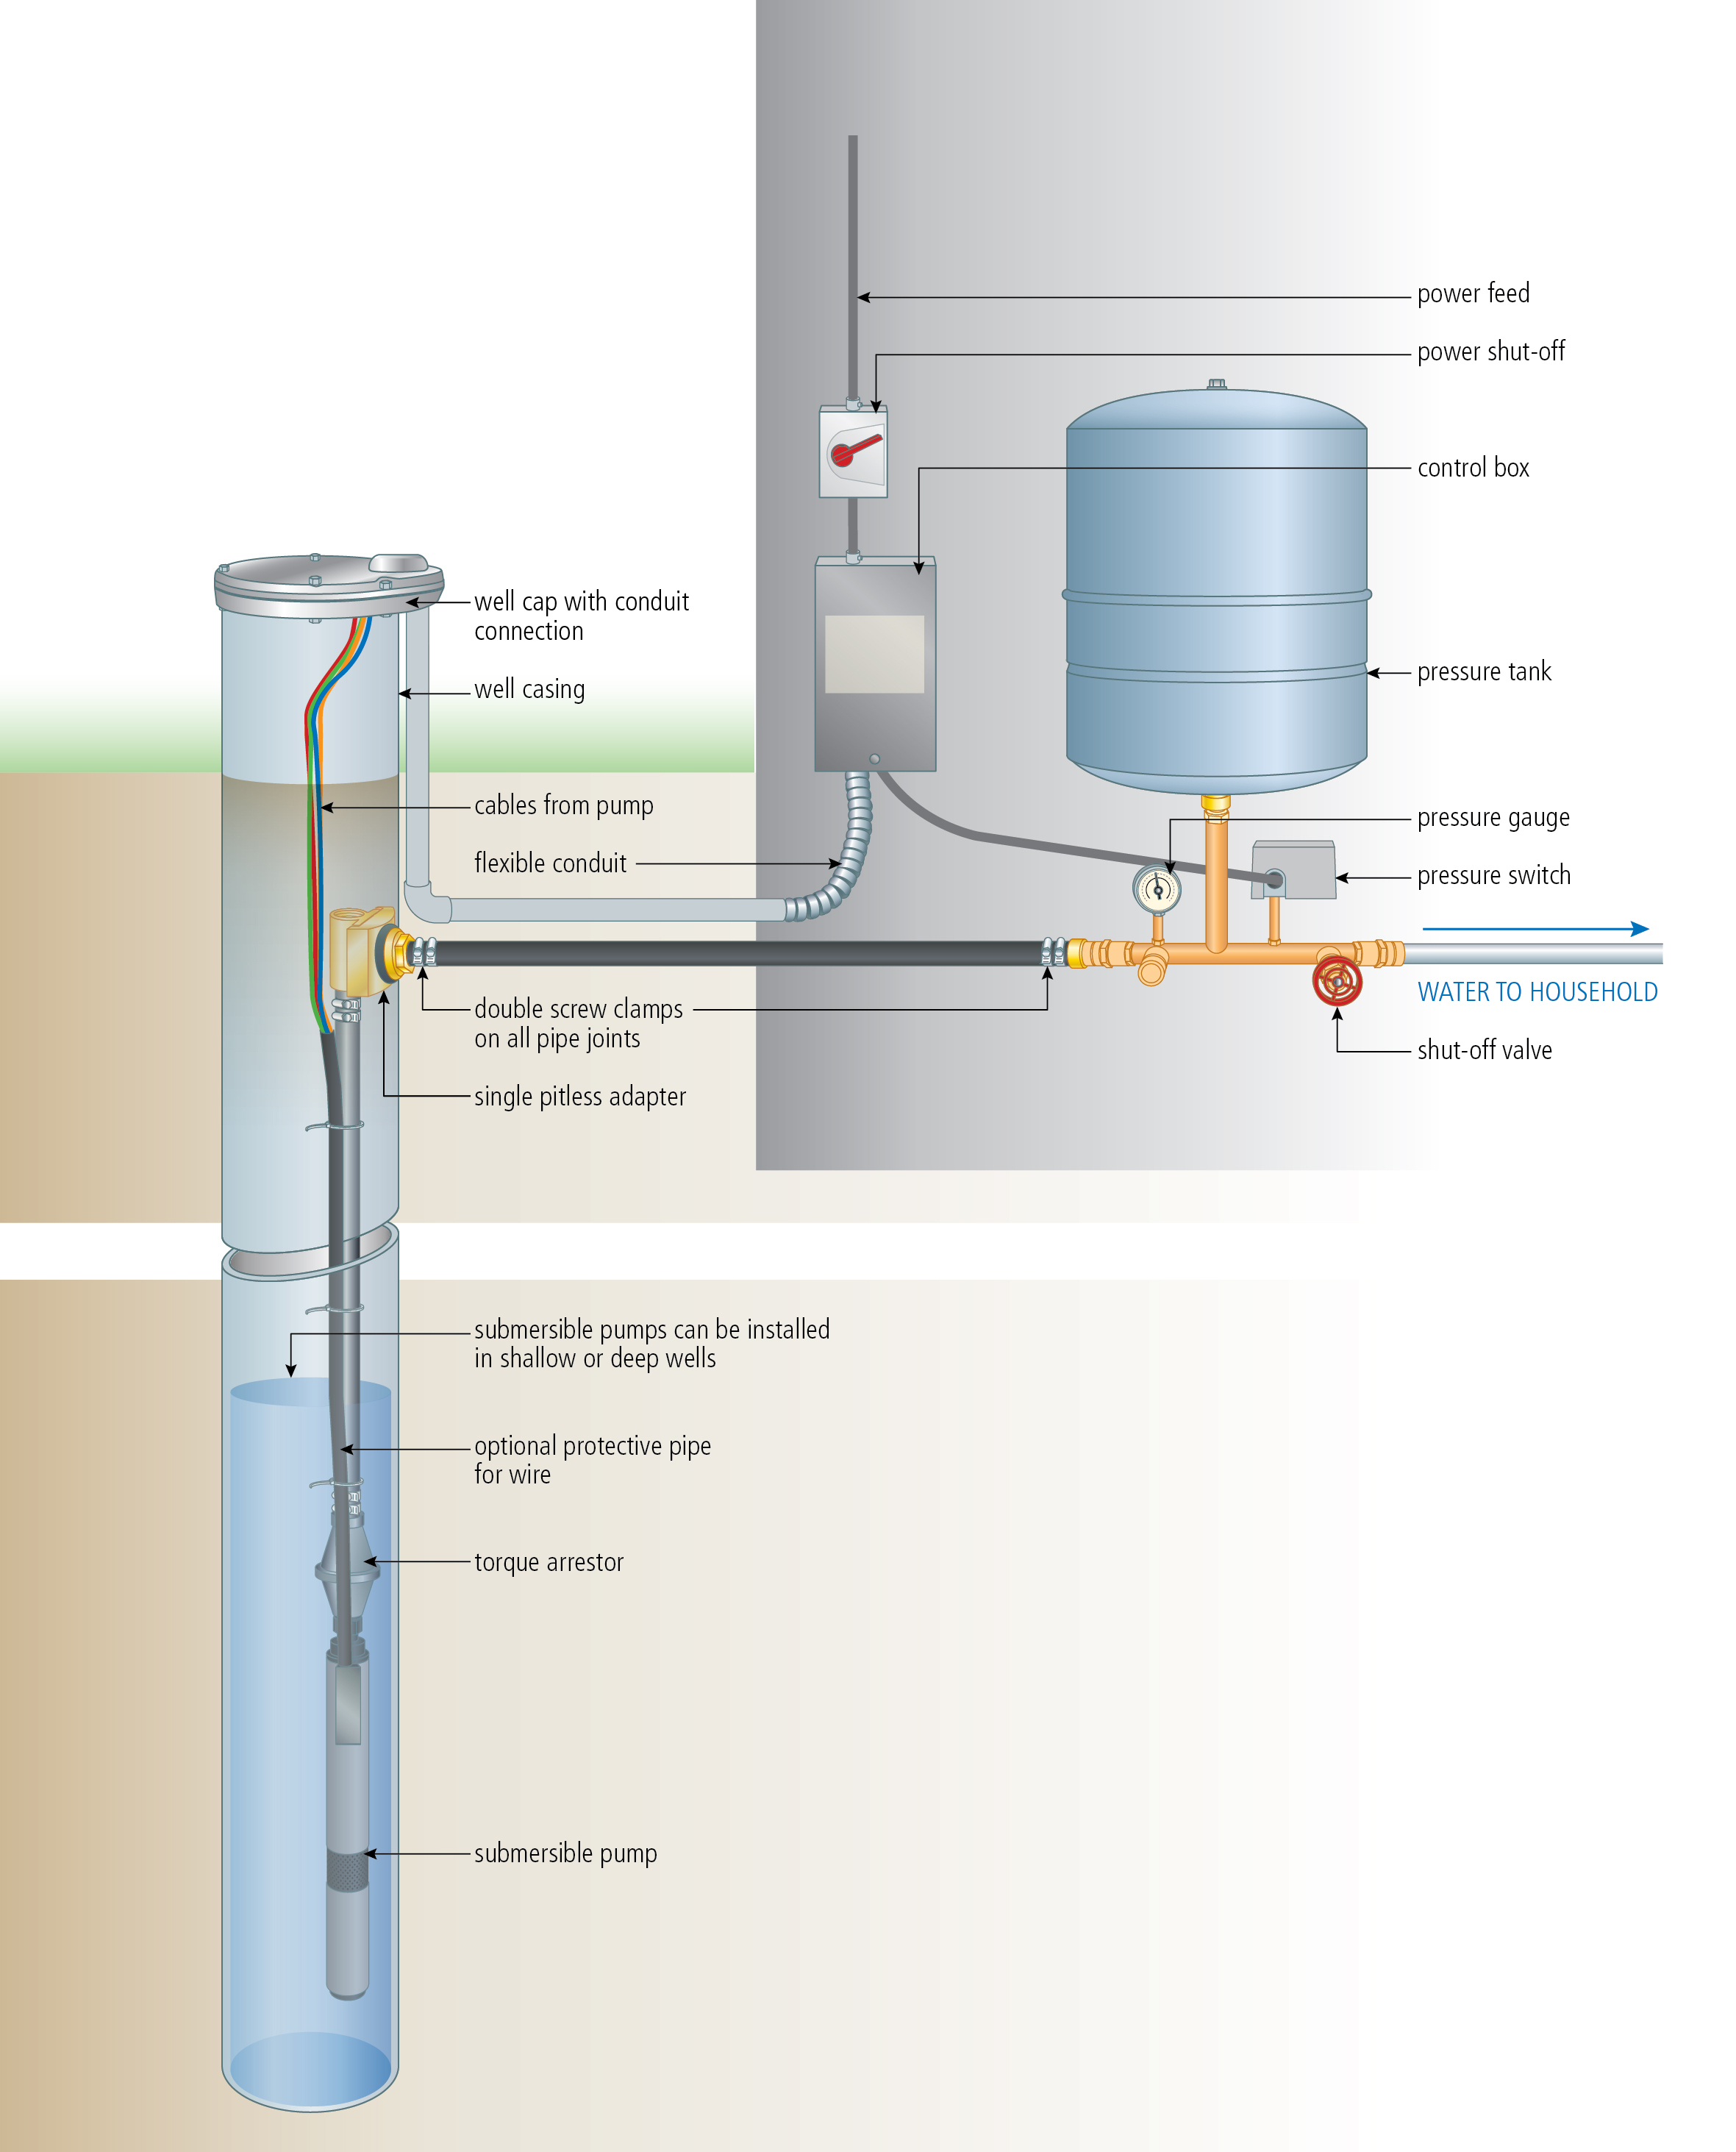 Install A Submersible Pump: 6 Lessons For Doing It Right - Submersible Well Pump Wiring Diagram